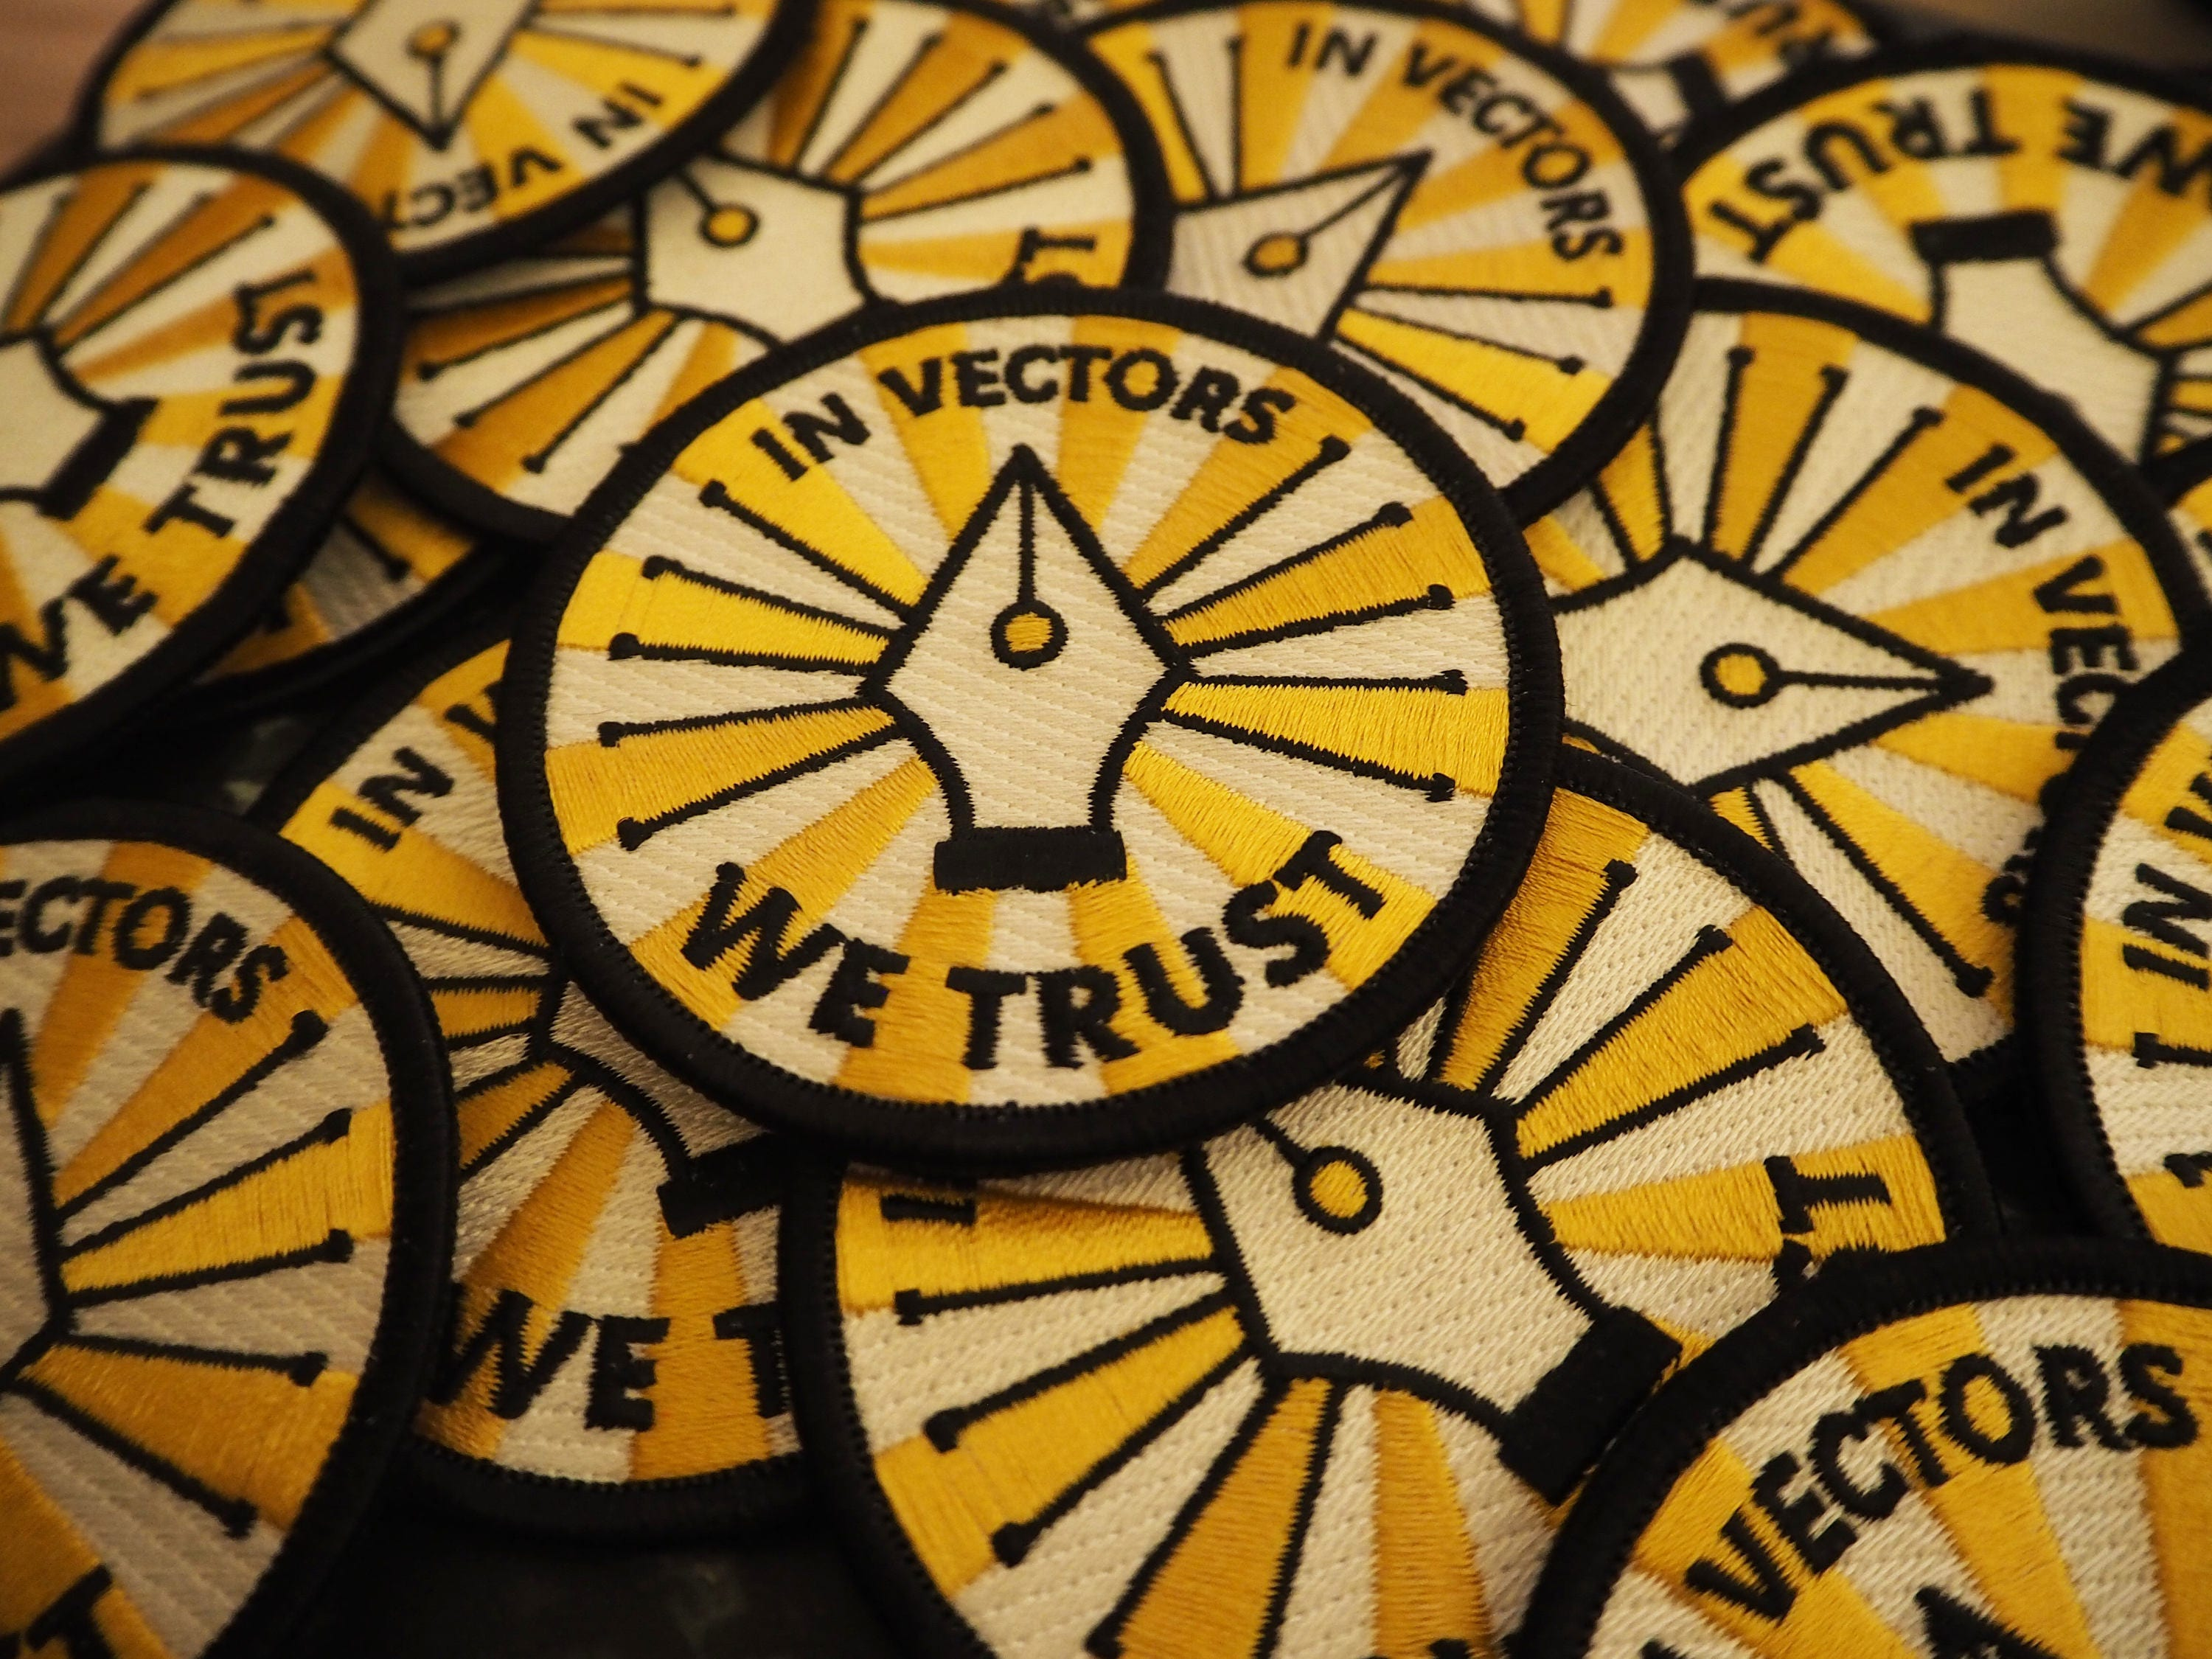 In Vectors We Trust - Iron-on Embroidered Badge Patch (Graphic  Design/Illustrator/Creative)